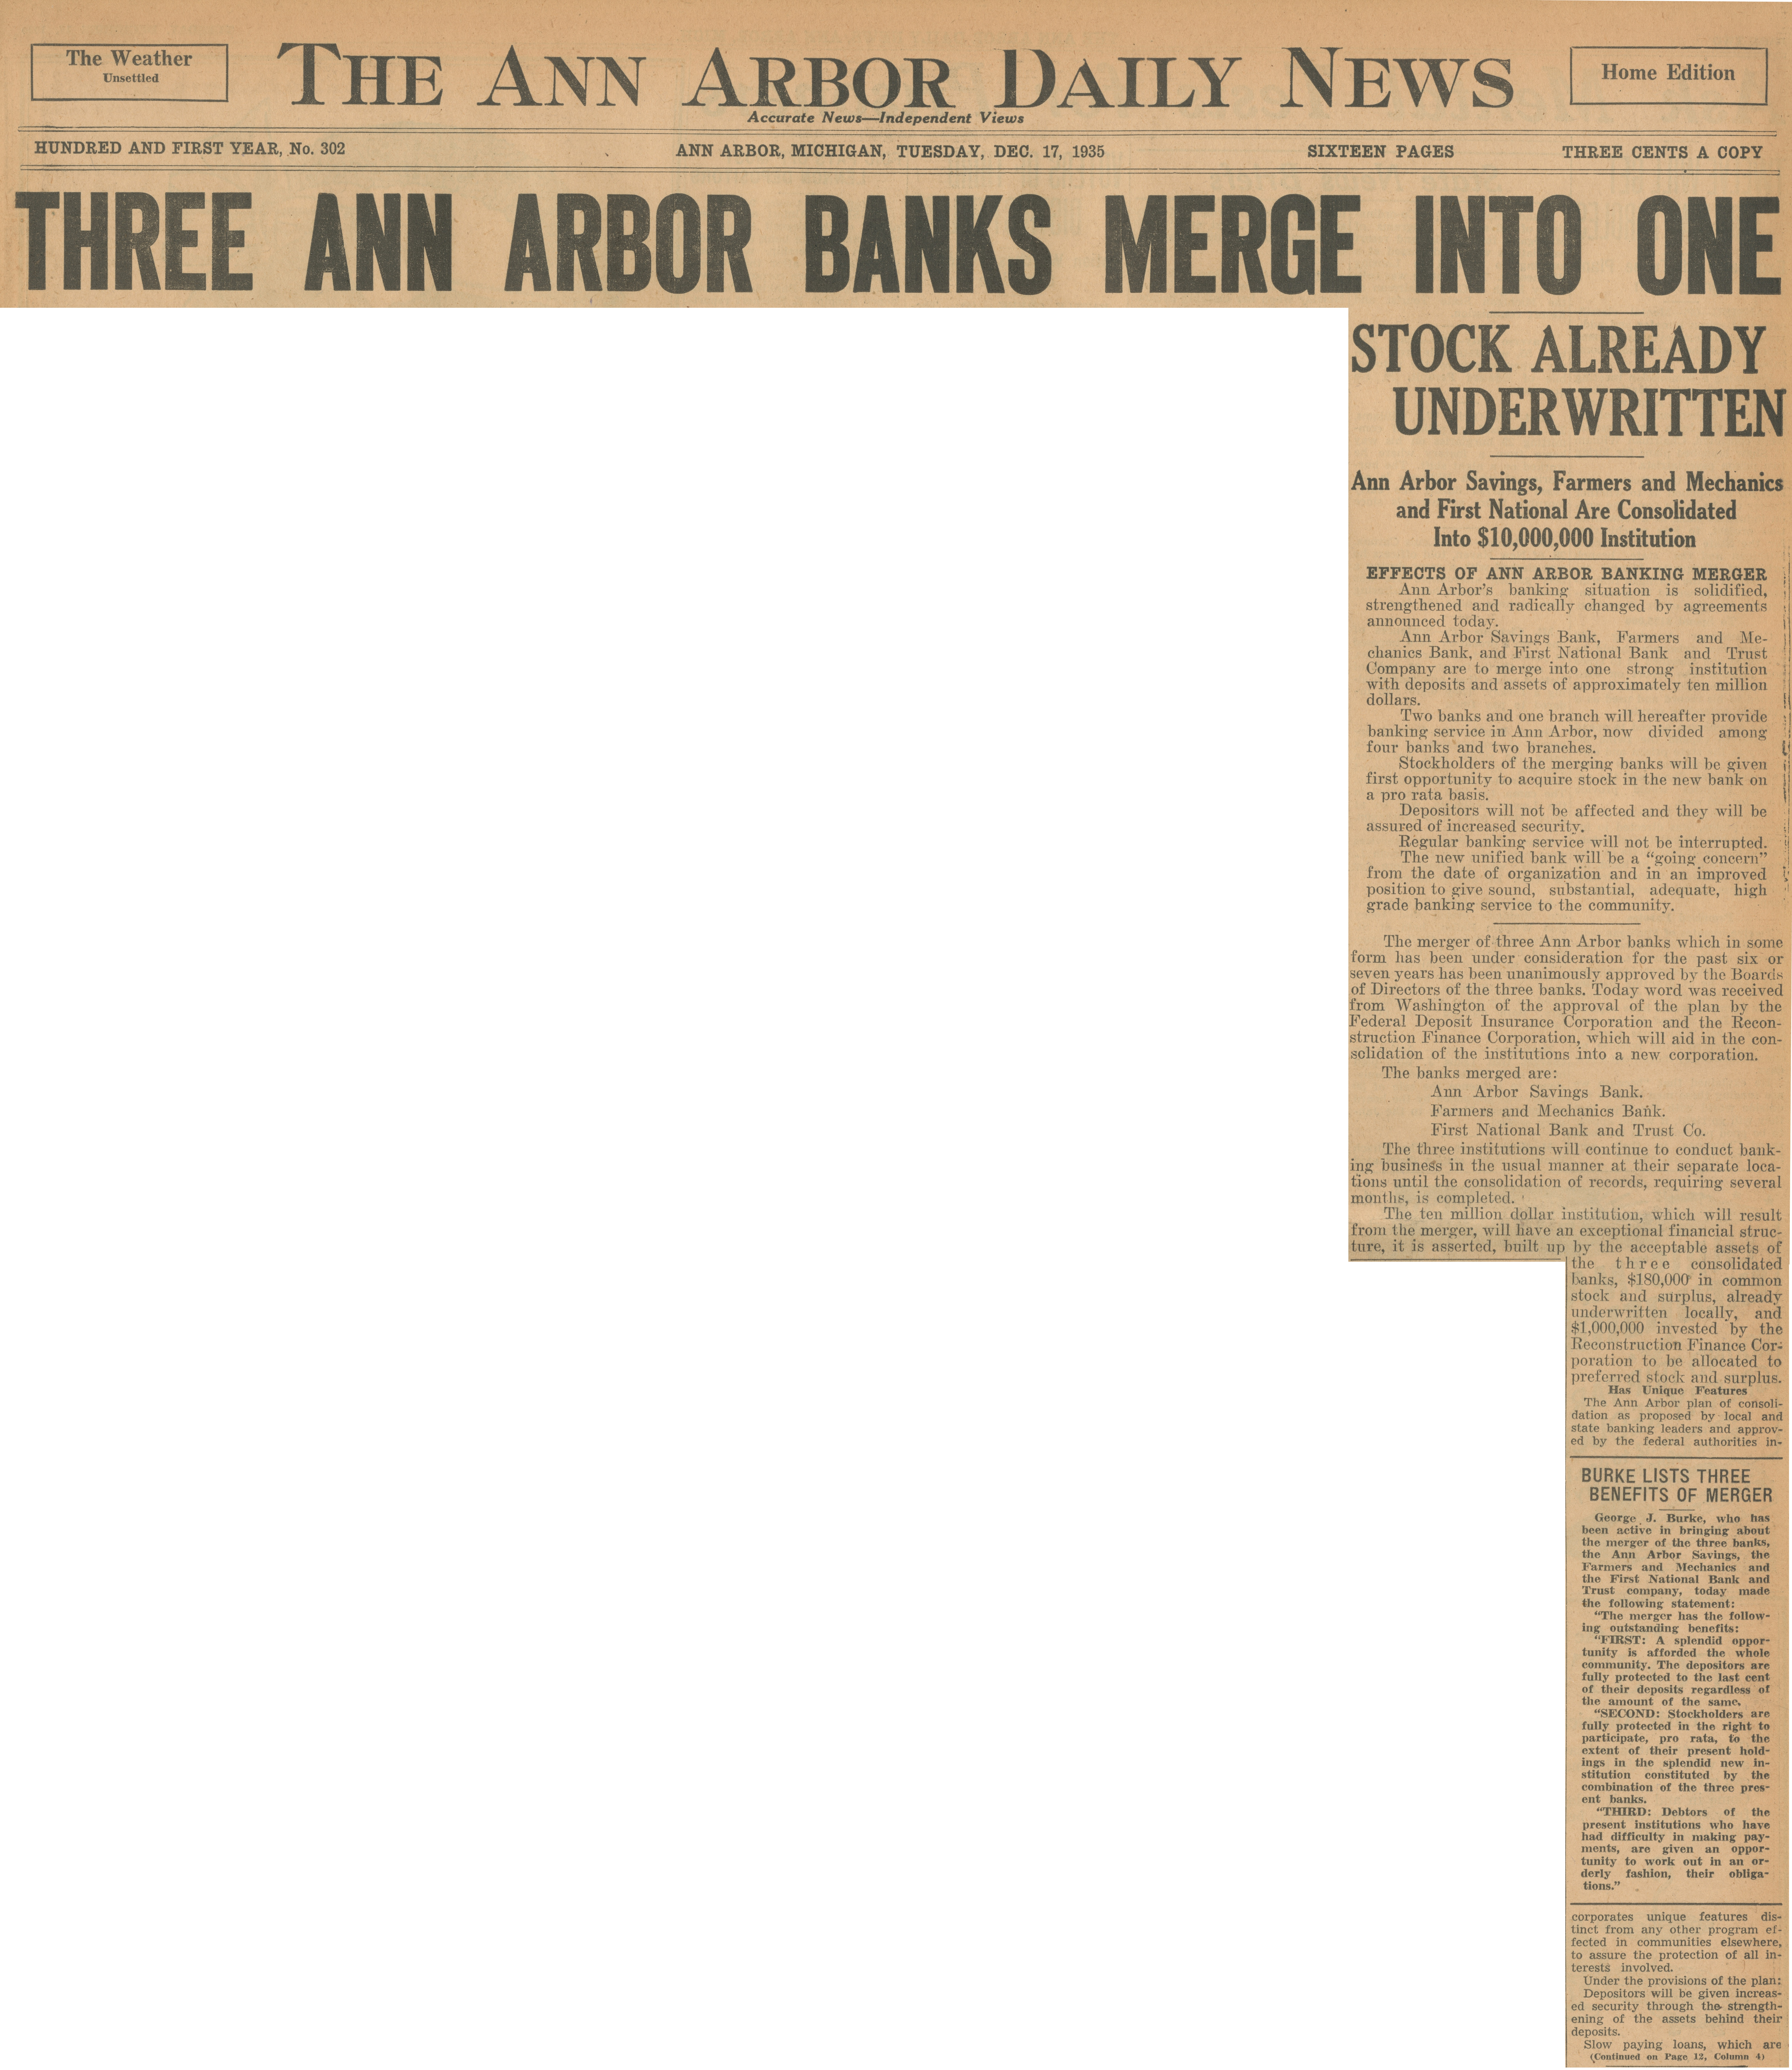 Three Ann Arbor Banks Merge Into One image